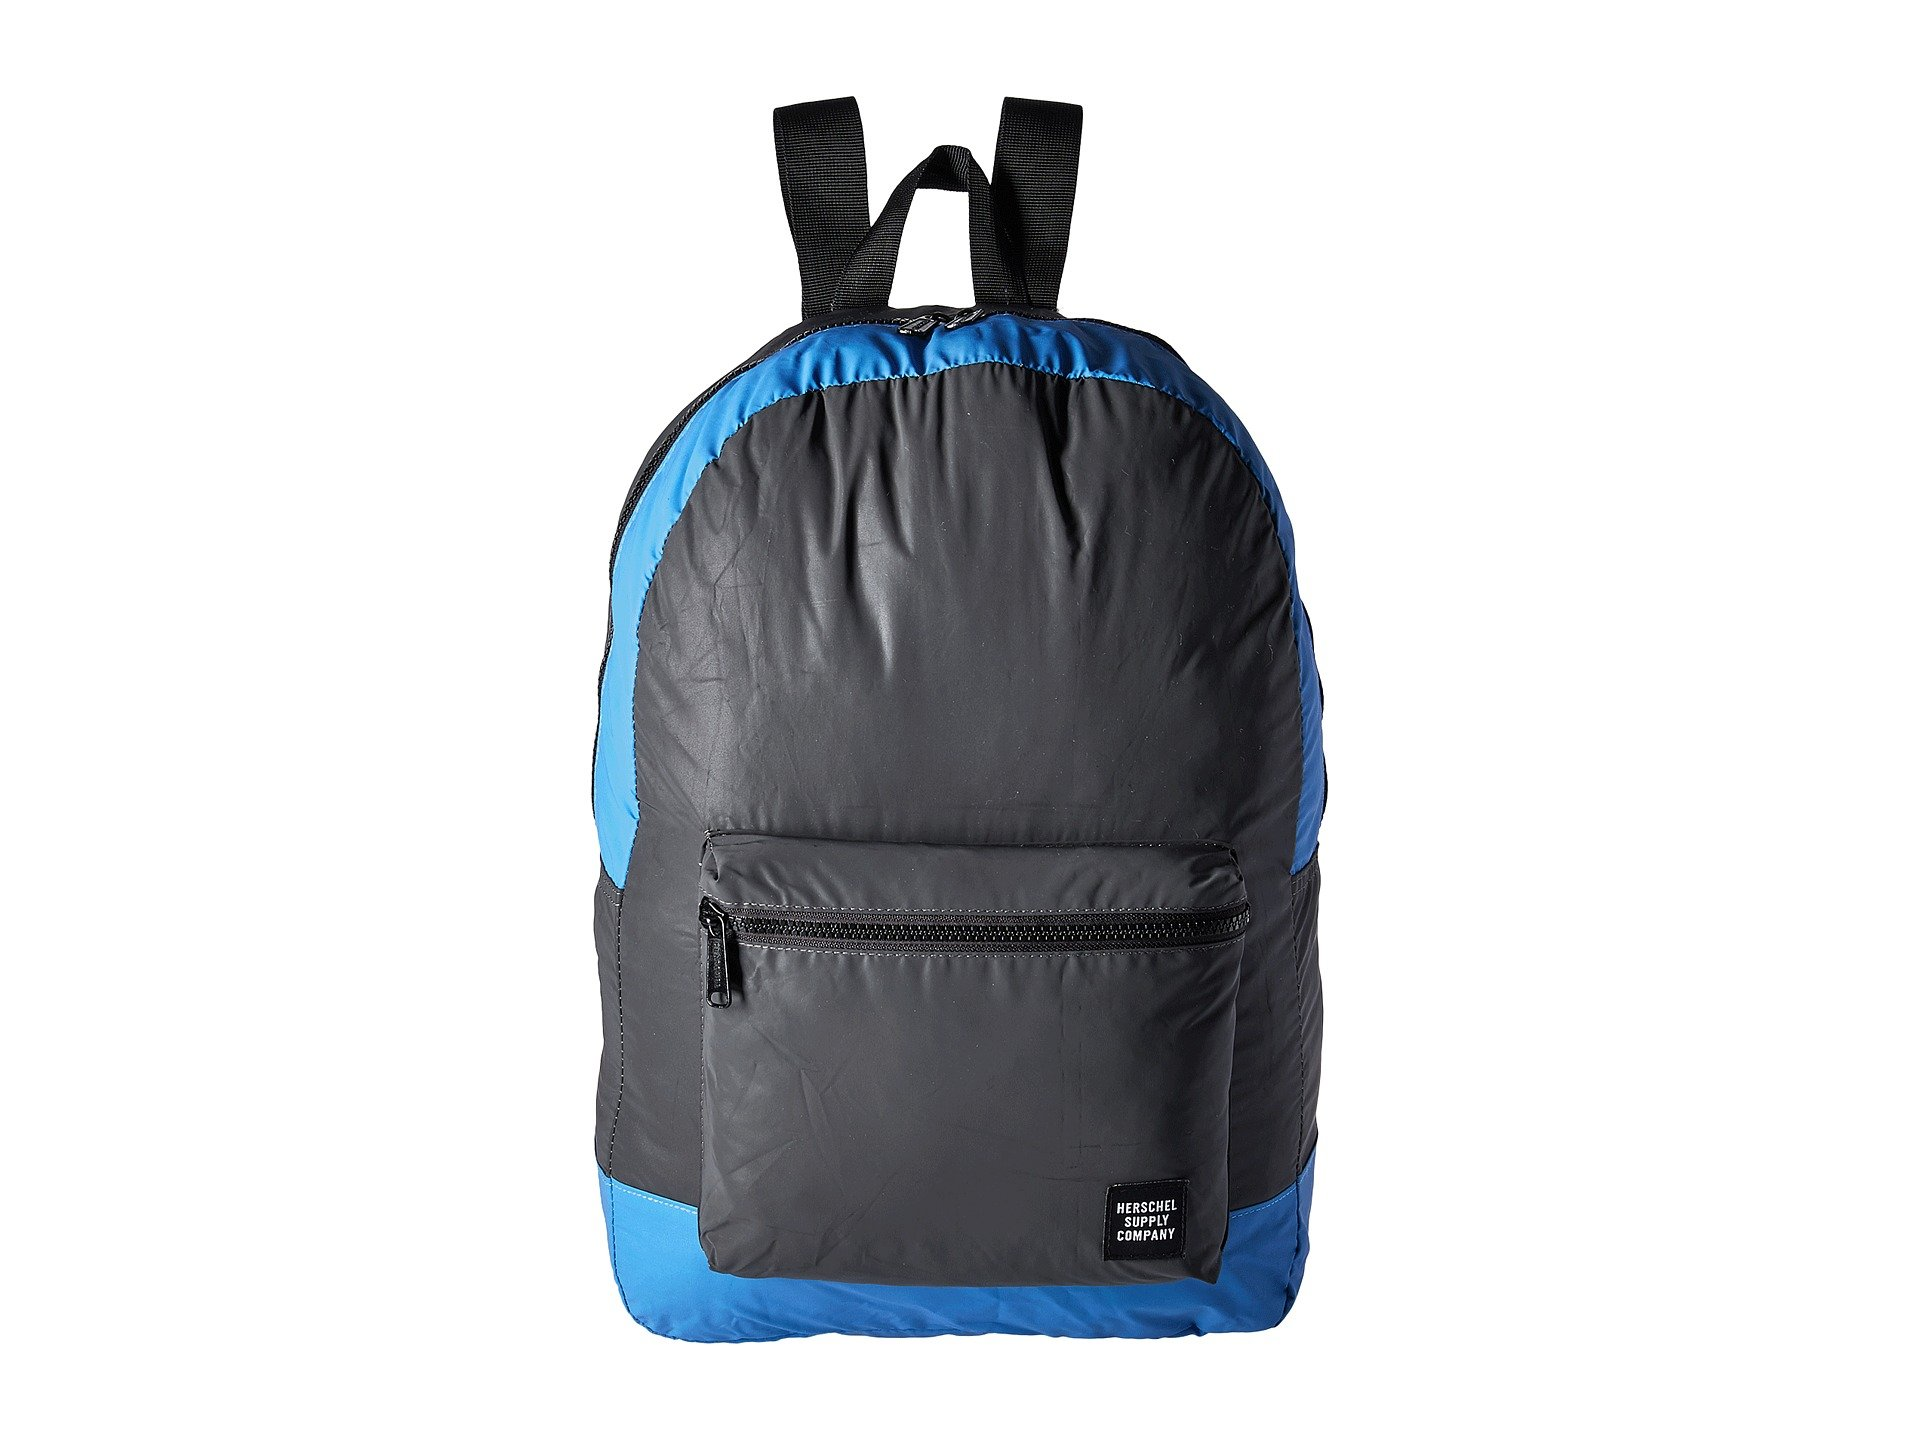 ec0a2801cb9 Herschel Supply Co Packable Daypack In Black Reflective Neon Blue